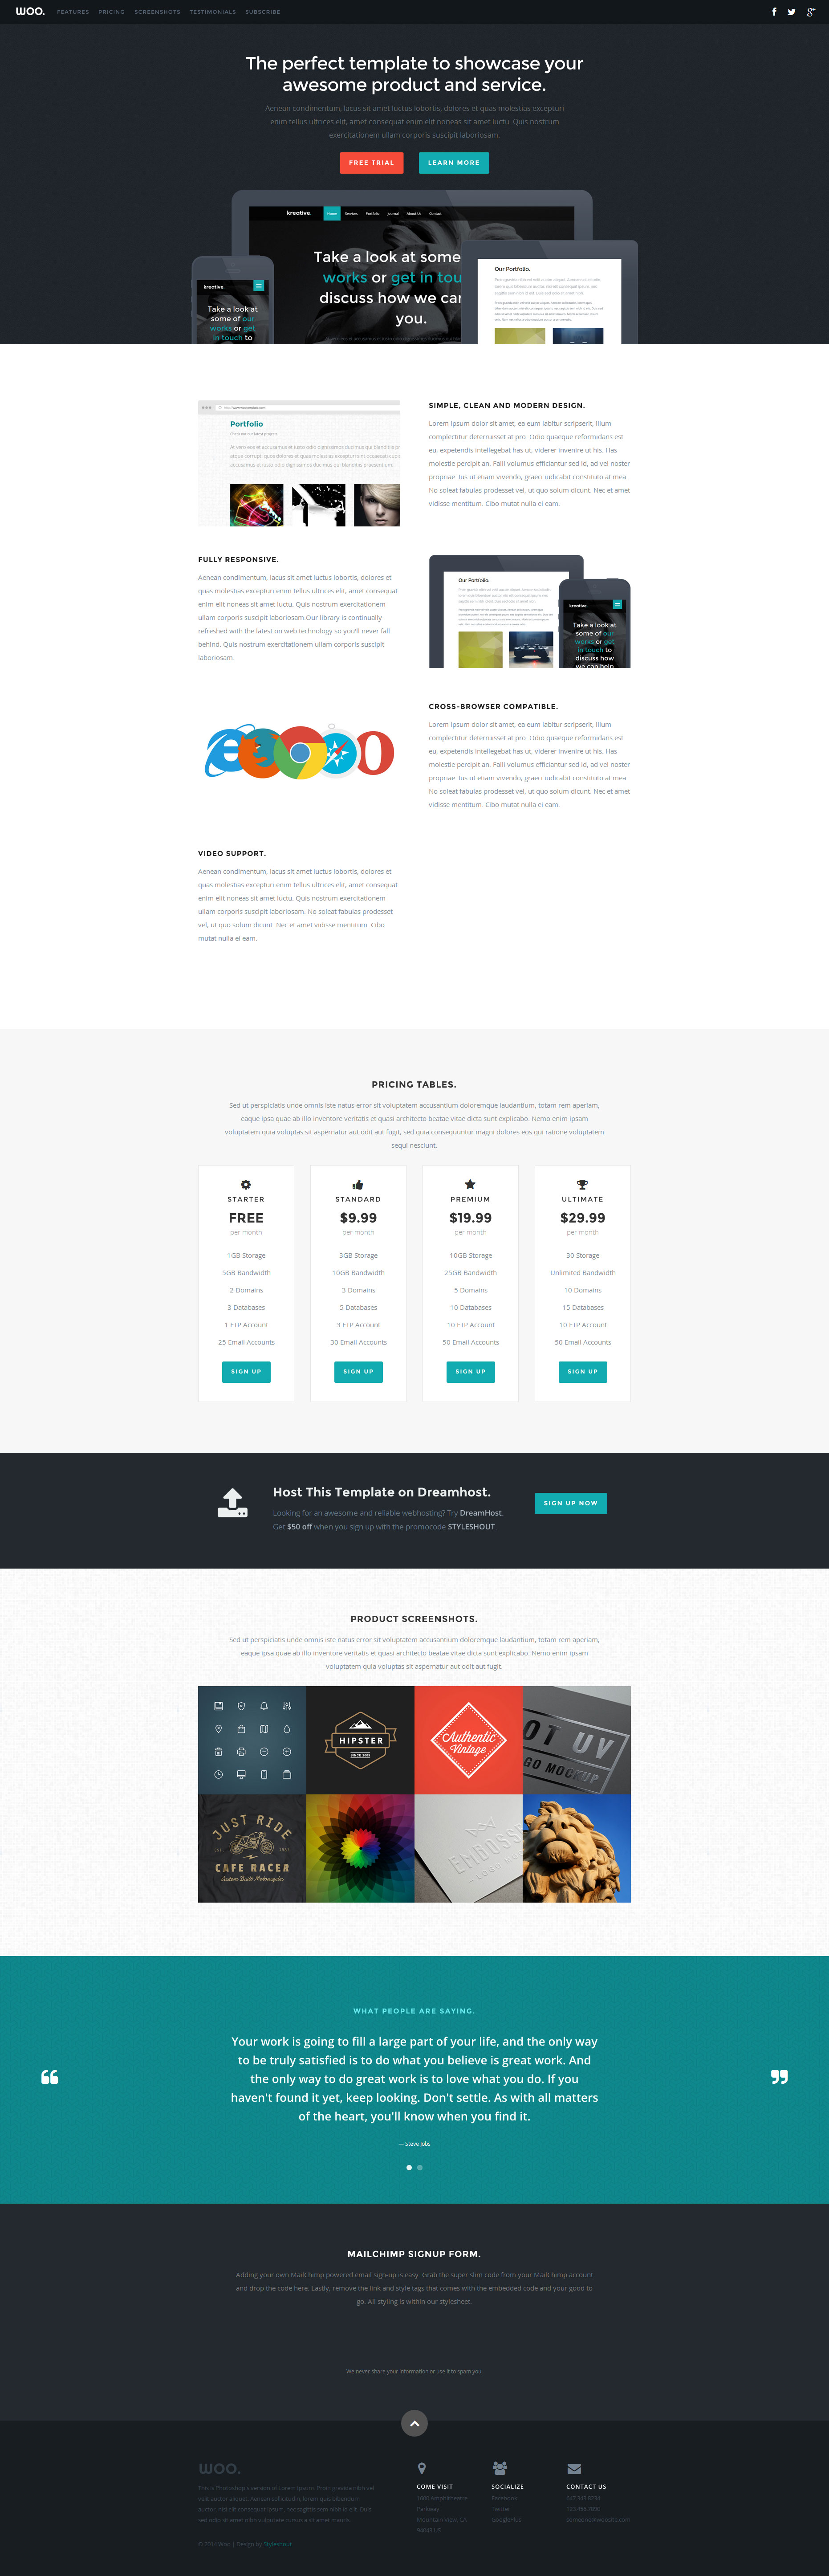 Woo---Free-Responsive-HTML5-CSS3-Template